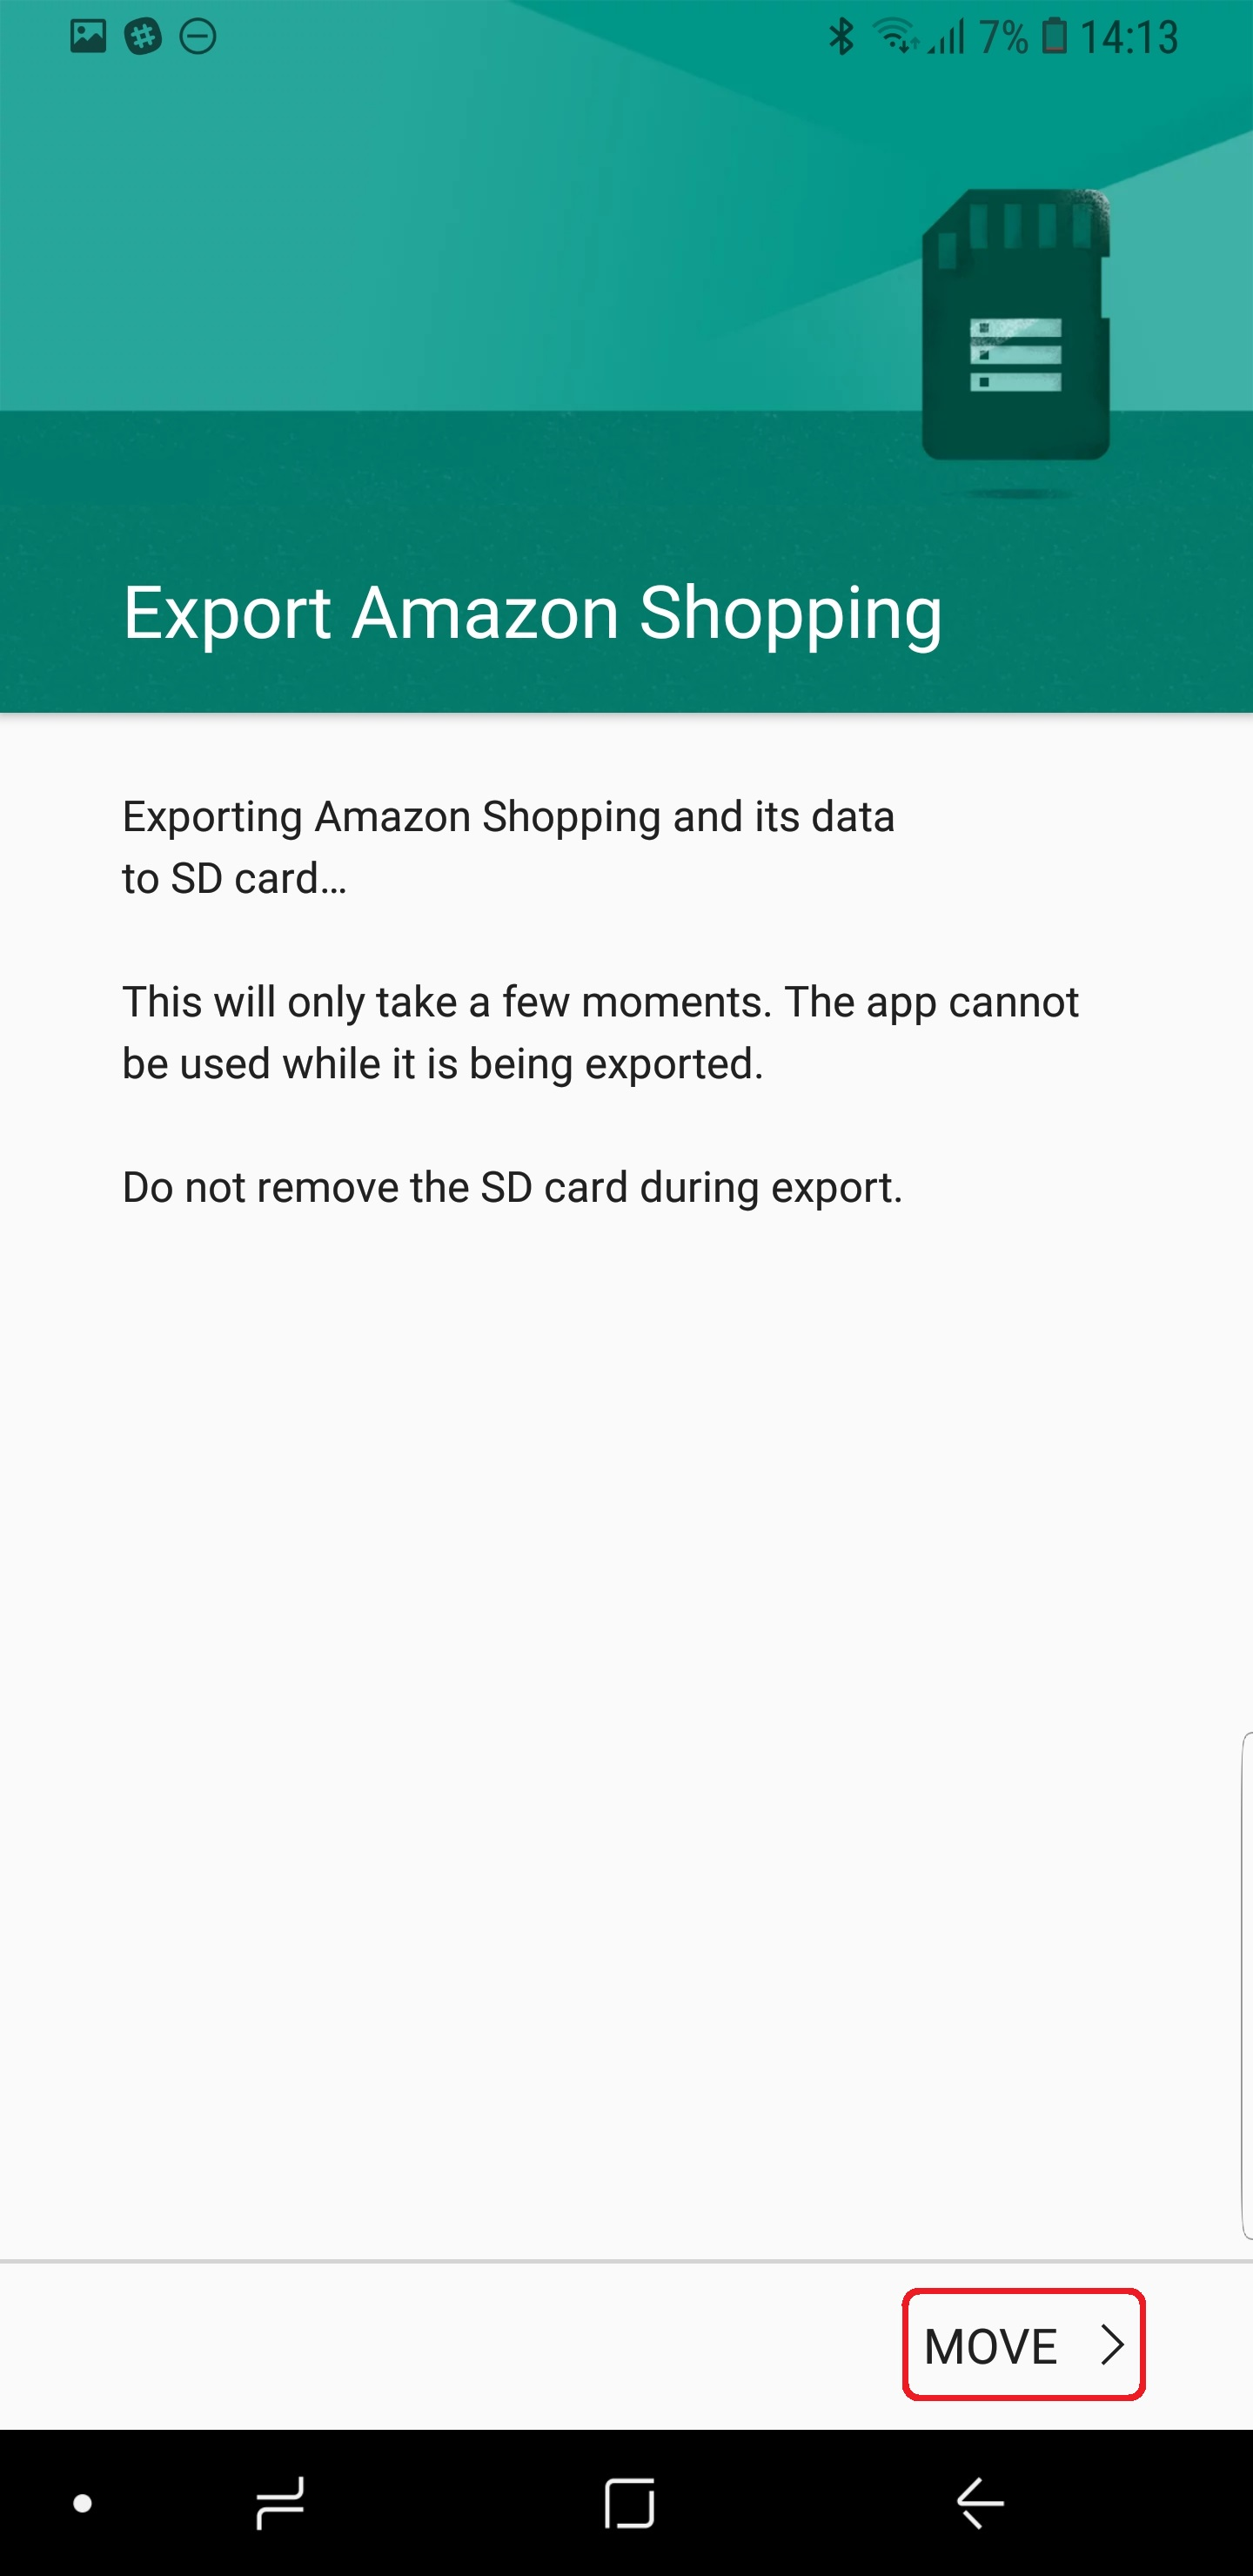 How to move apps to SD card on Galaxy S9 and Galaxy S9+ - SamMobile